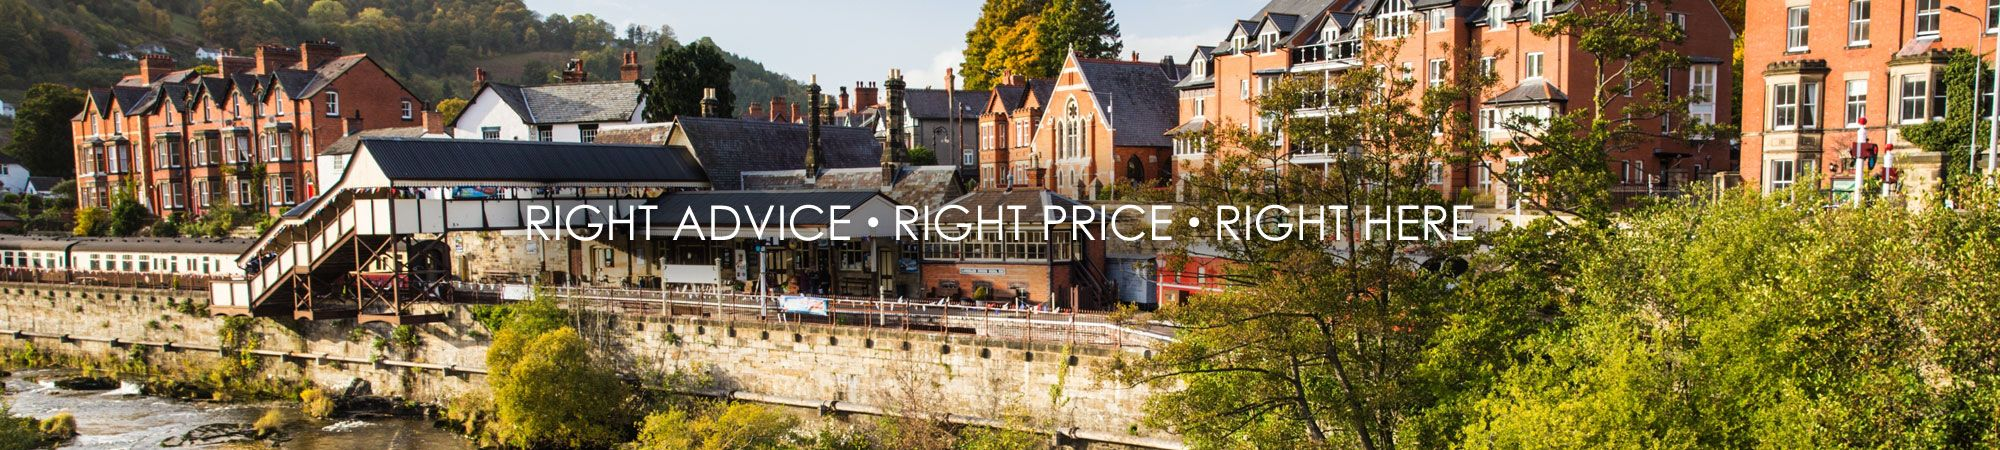 Right Advice • Right Price • Right Here tagline with Wrexham and North Wales scenery backdrop